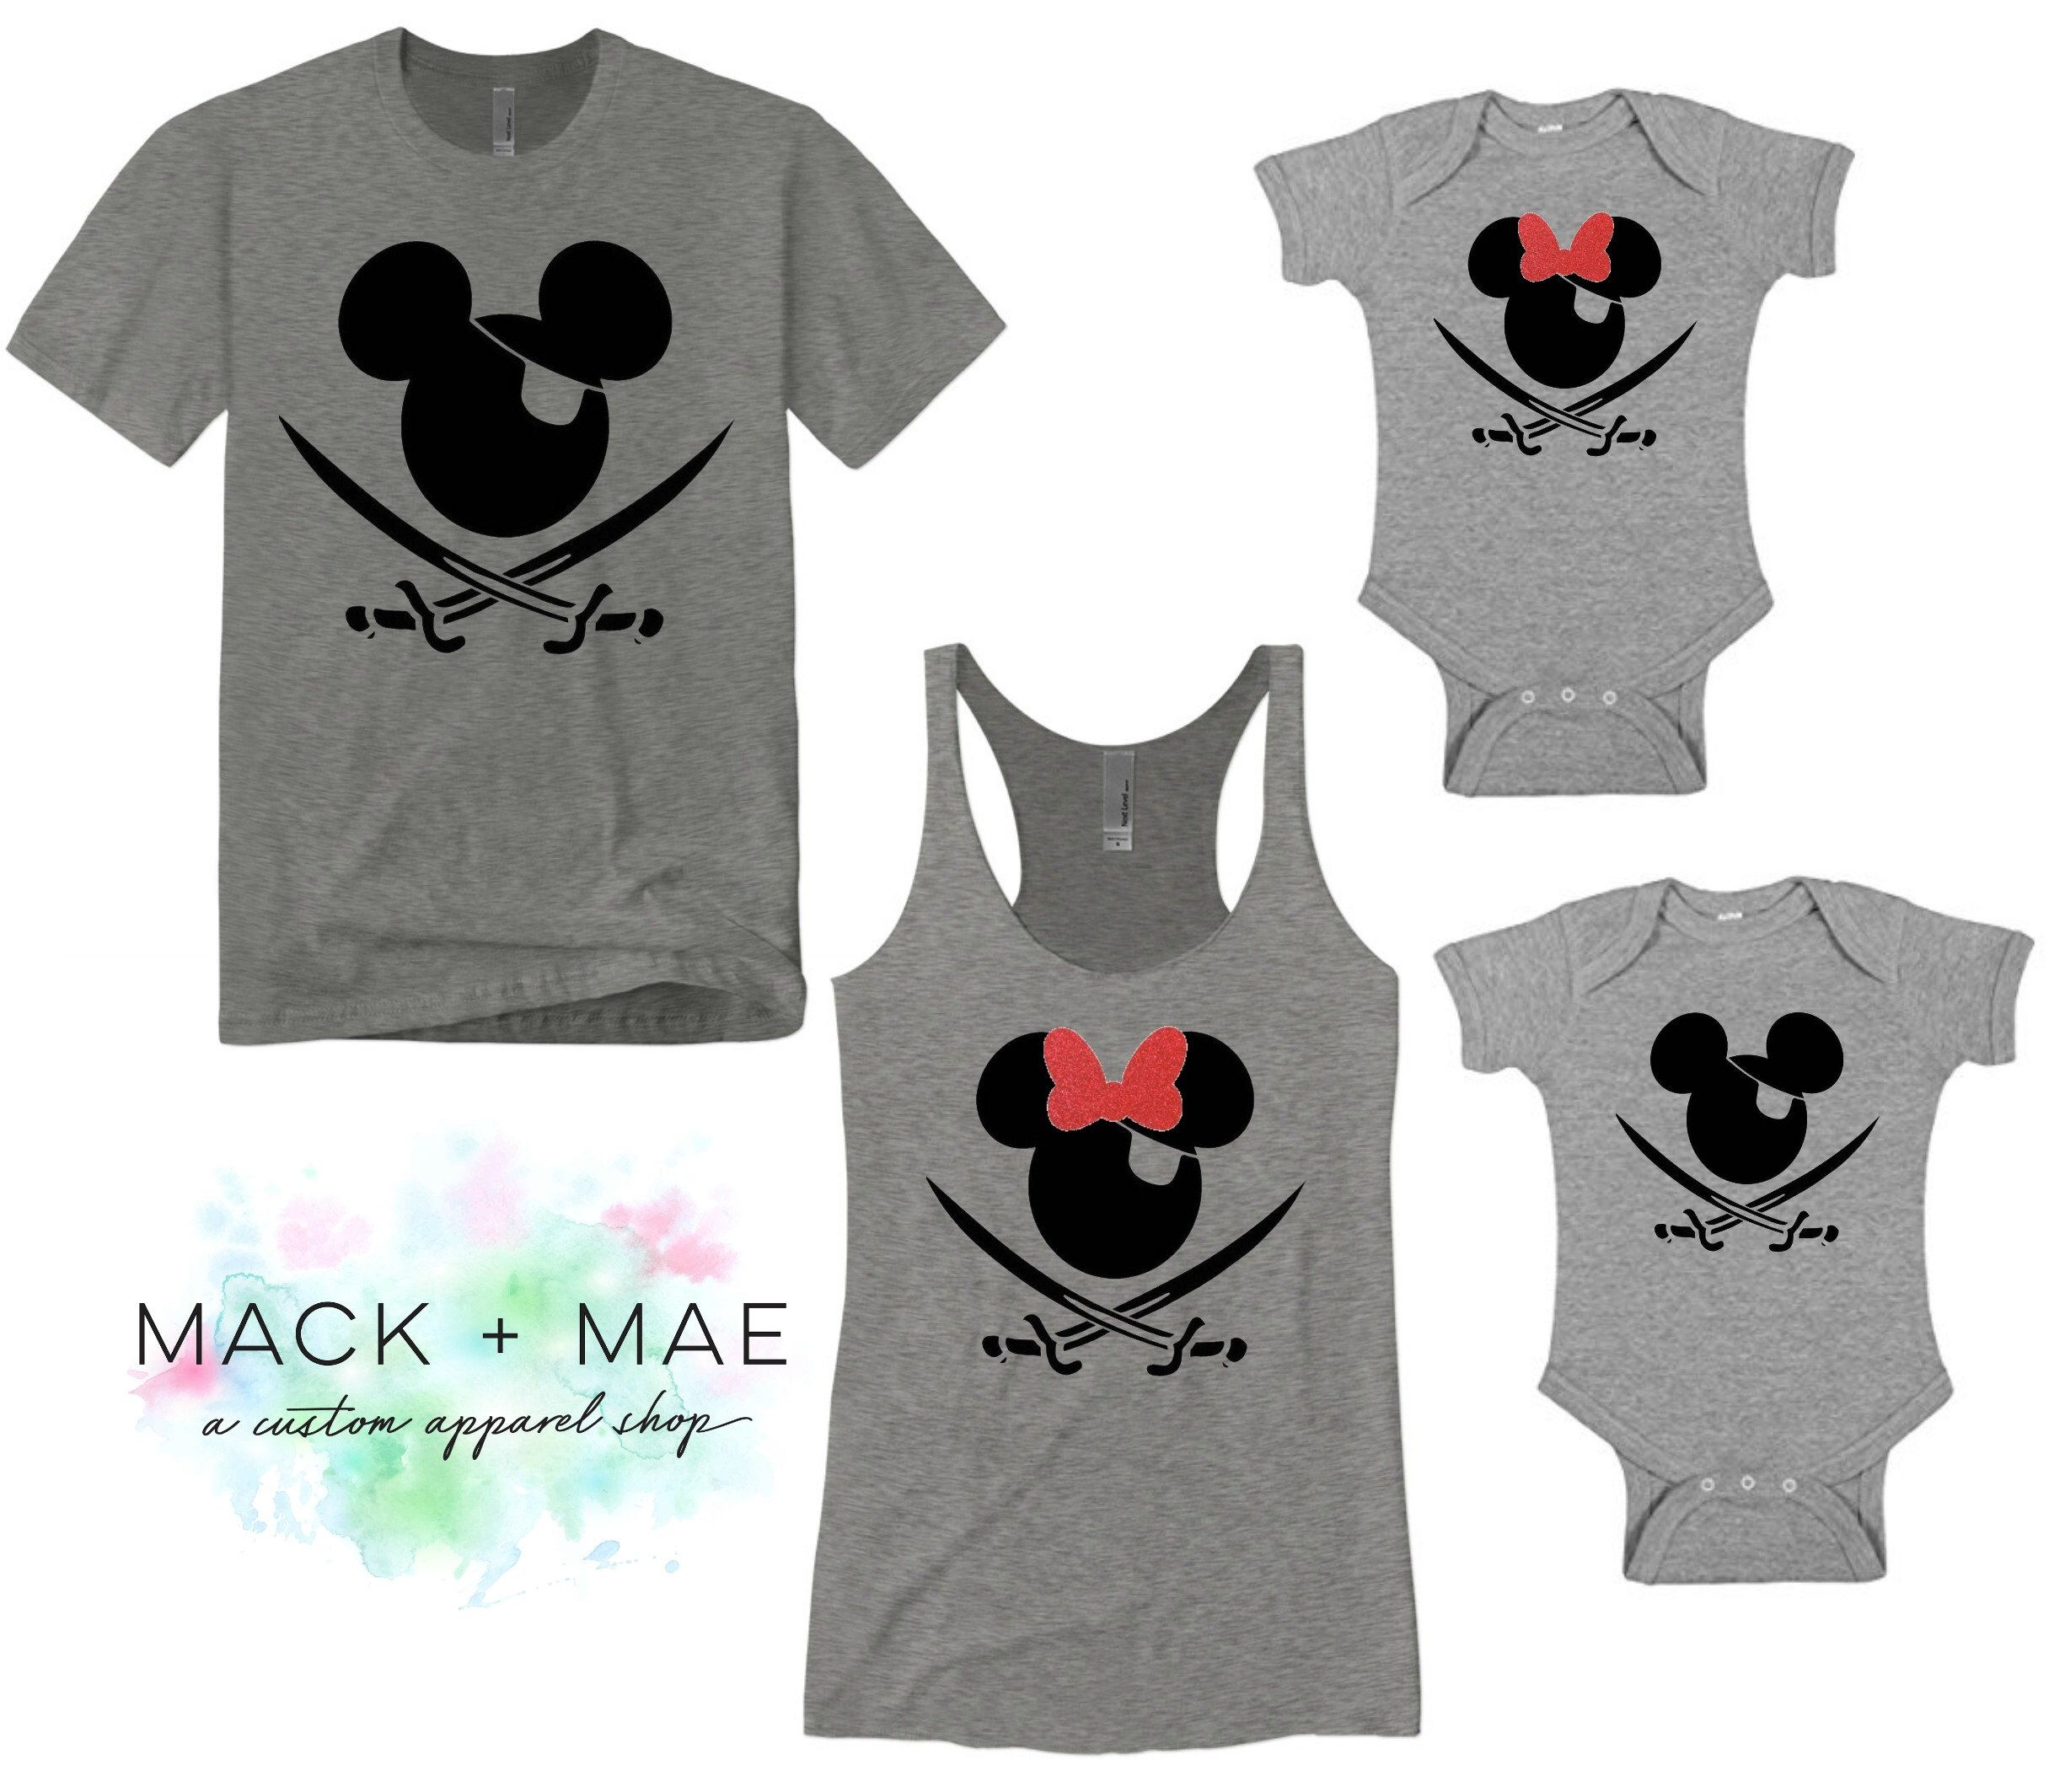 d673f3741 Pirate Mickey or Minnie Shirts, Disney World Matching Family Tops, Disney  Vacation, Men's Women's Kids, Disney Cruise, Pirate's Life for Me